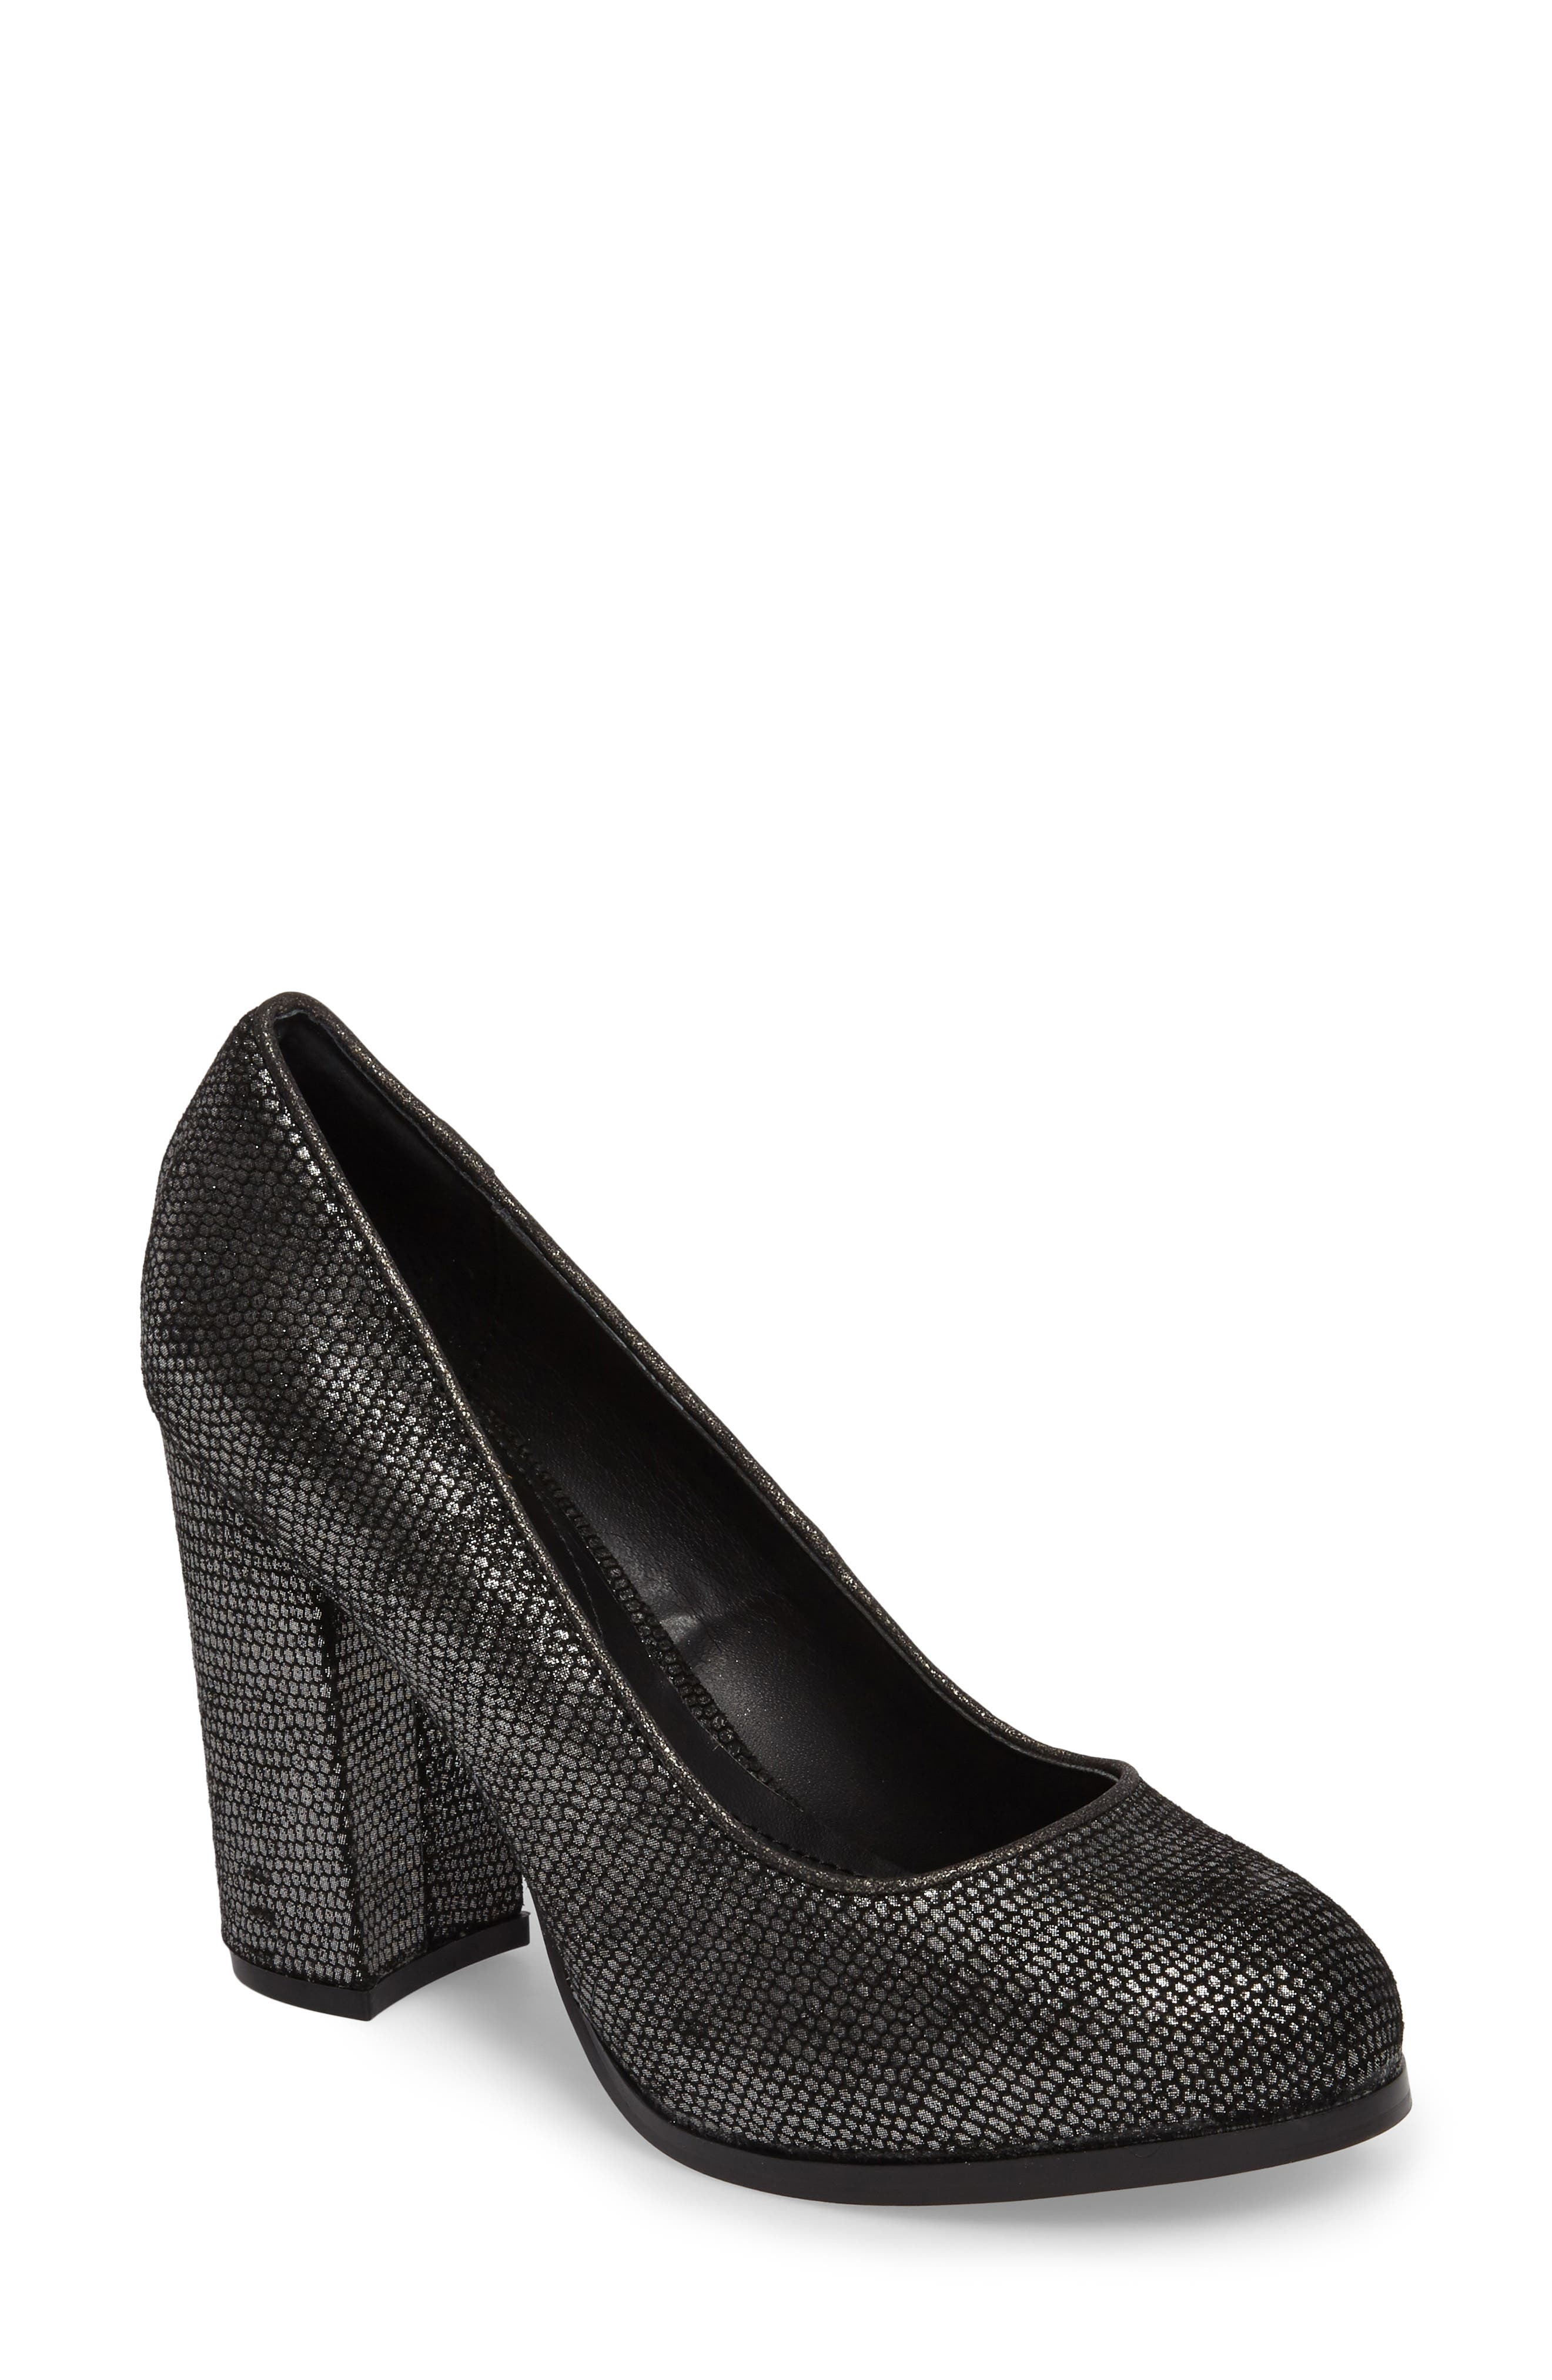 Hayley Pump,                         Main,                         color, PEWTER FABRIC